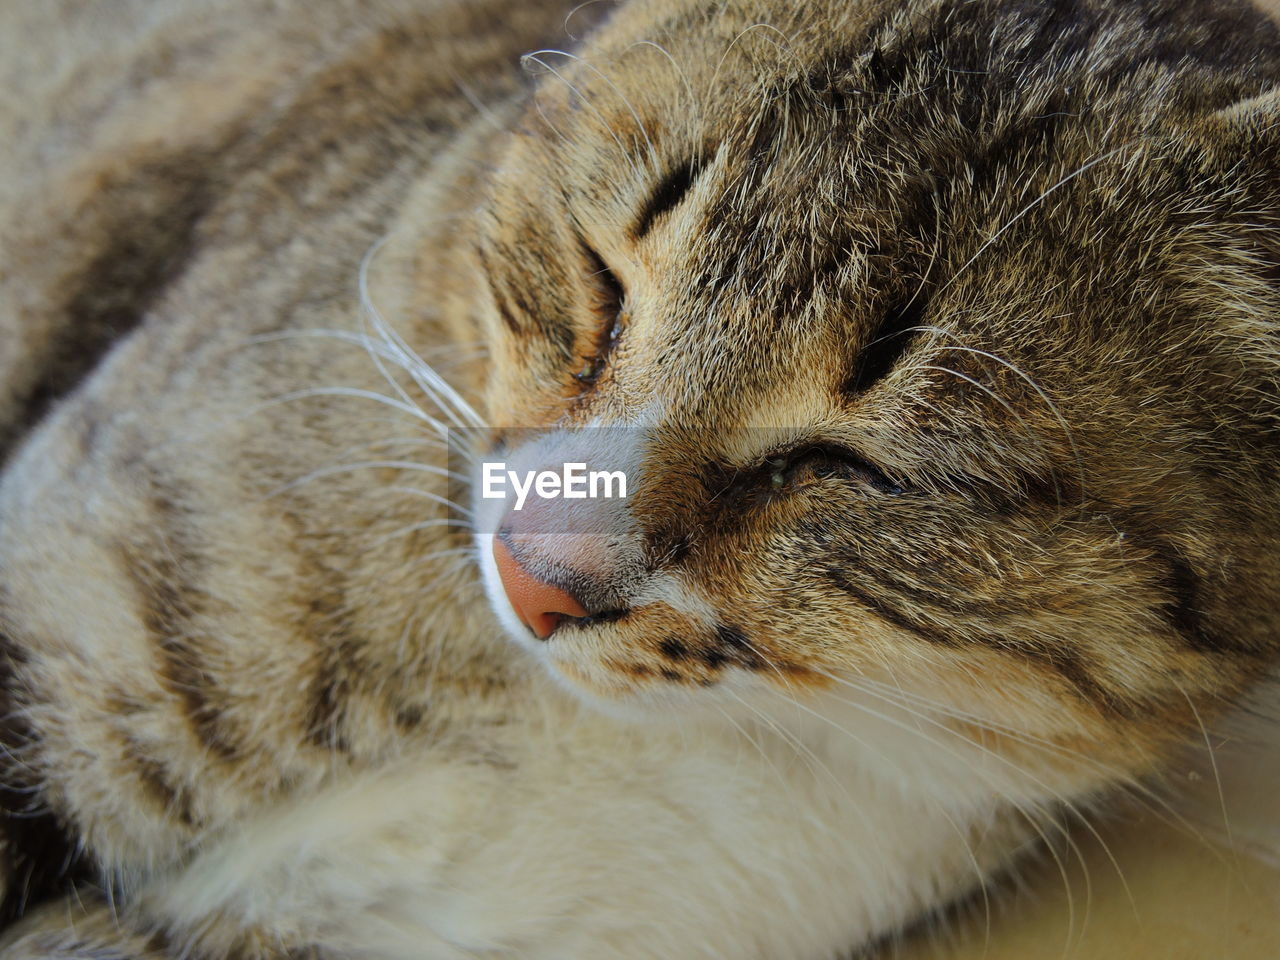 feline, cat, mammal, animal themes, animal, domestic cat, one animal, pets, domestic, domestic animals, eyes closed, close-up, vertebrate, whisker, relaxation, sleeping, no people, animal body part, indoors, resting, animal head, snout, tabby